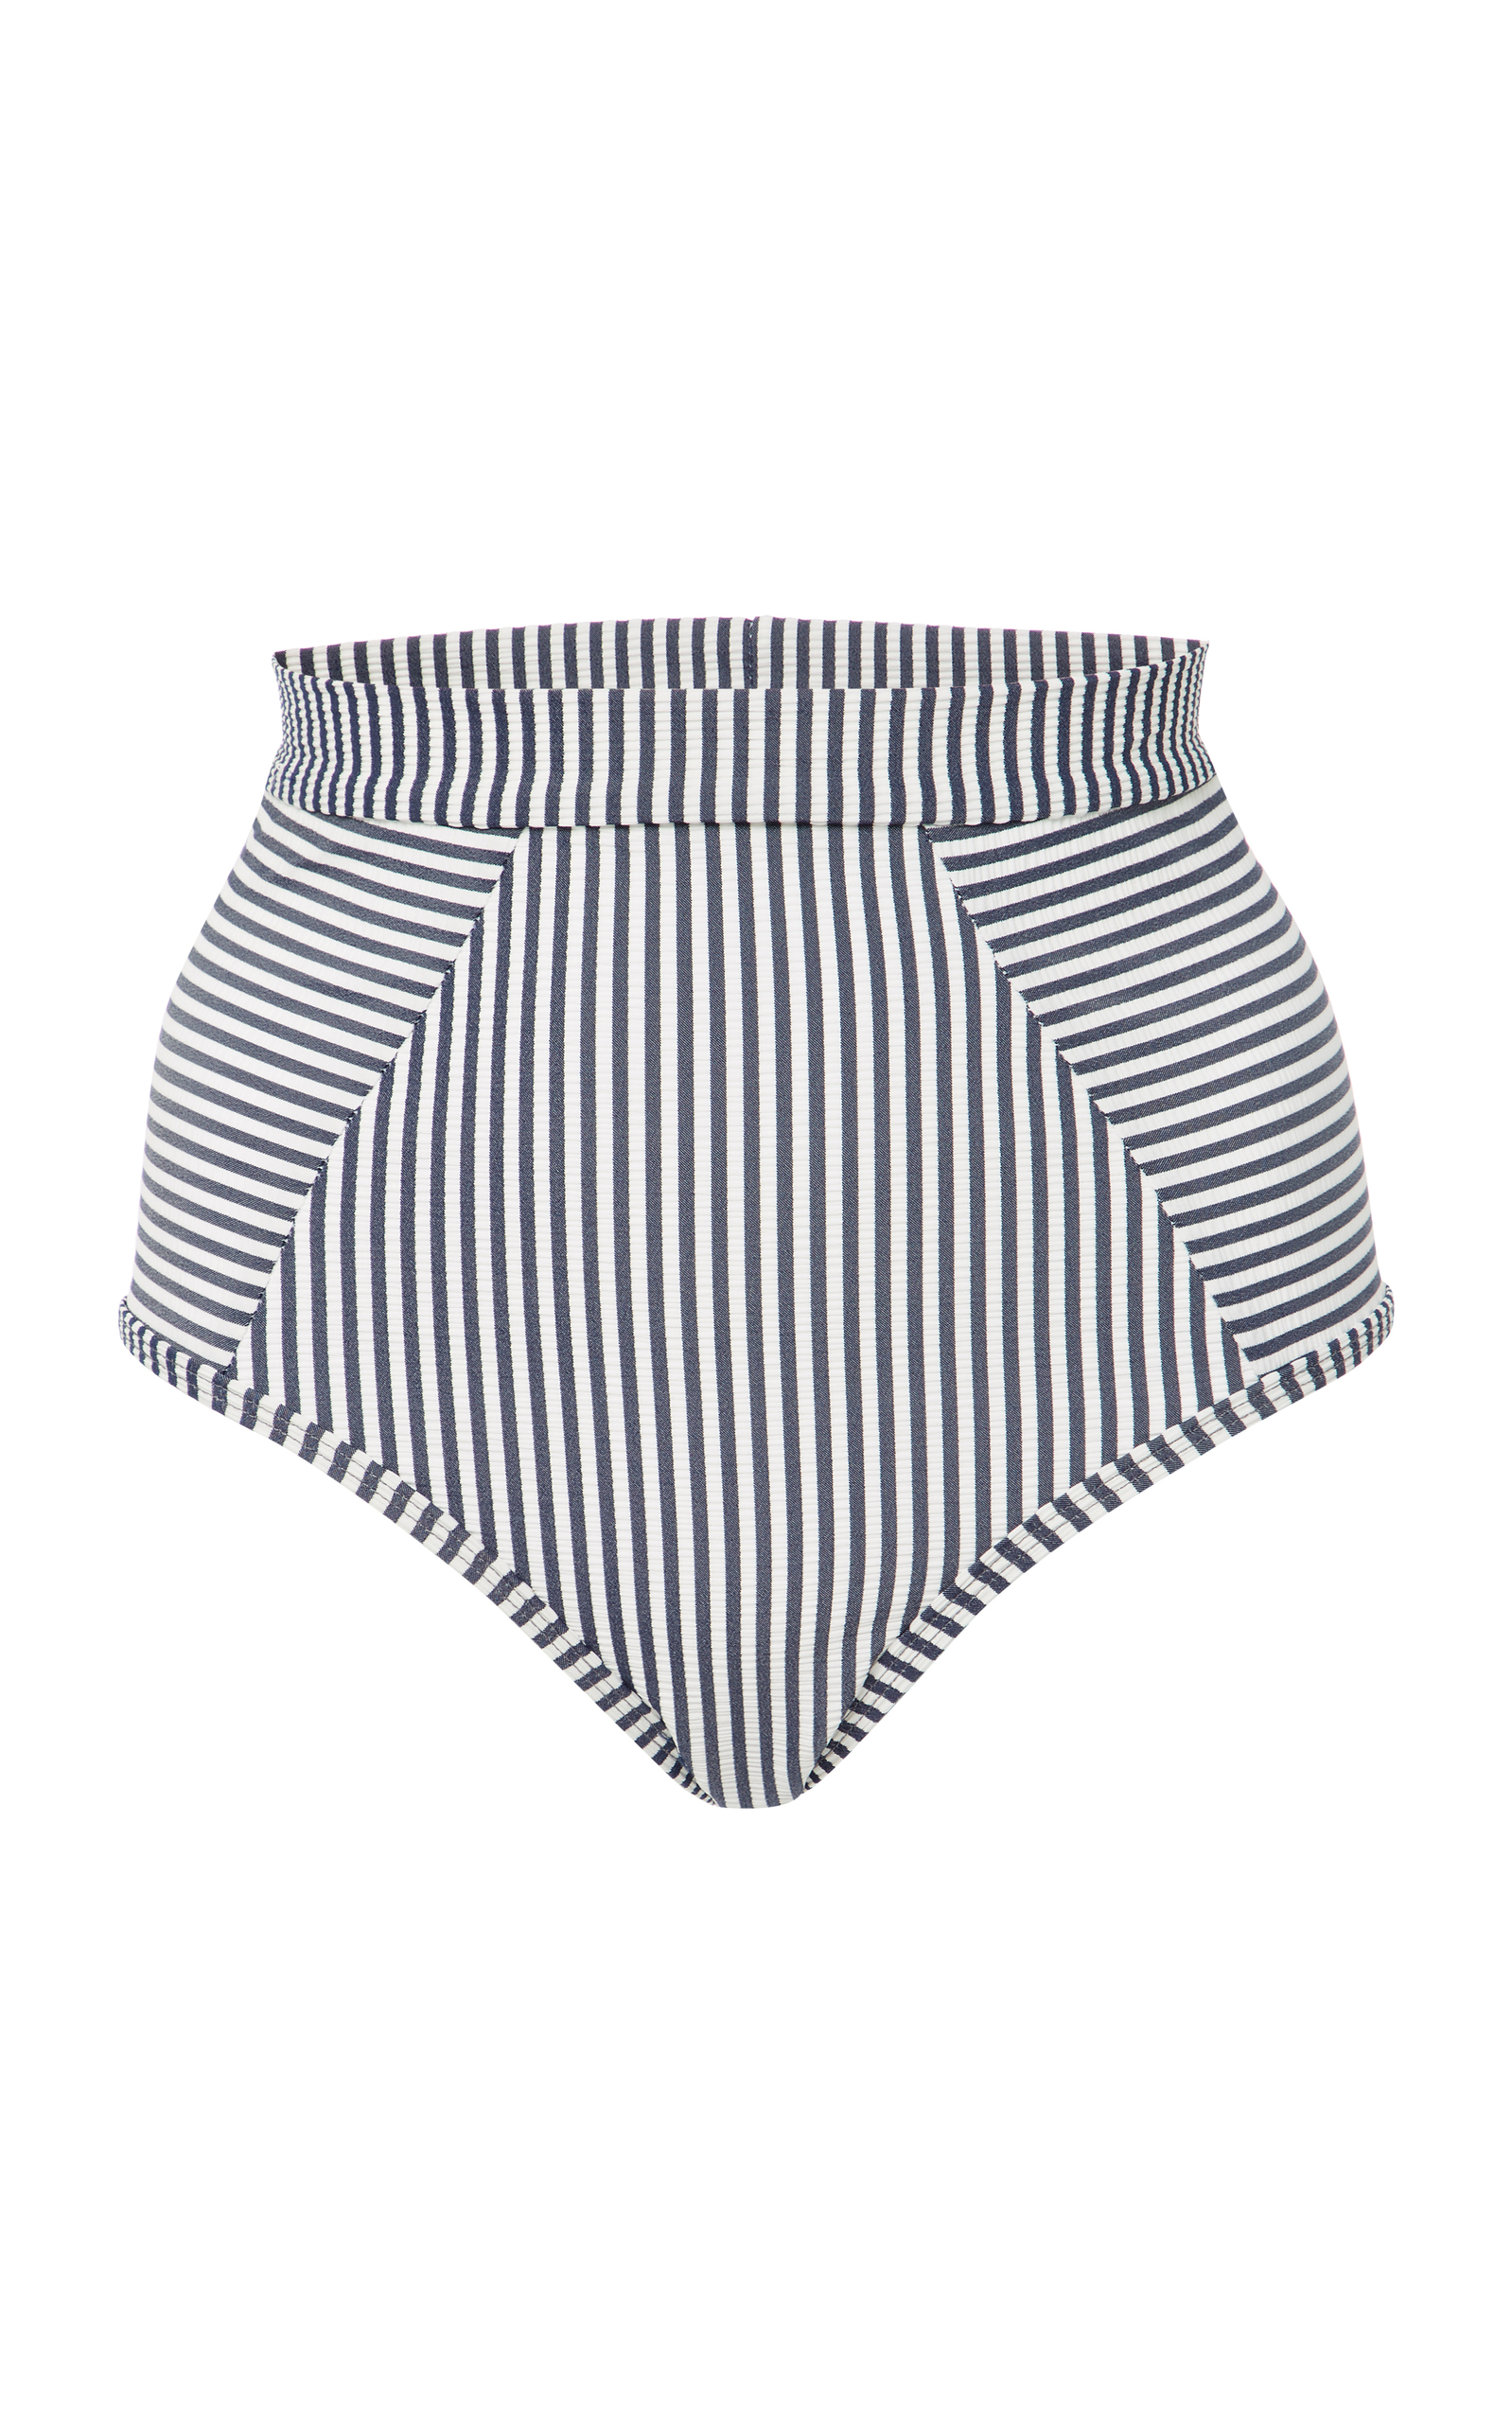 Suboo ZIGGY STRIPED BOTTOM